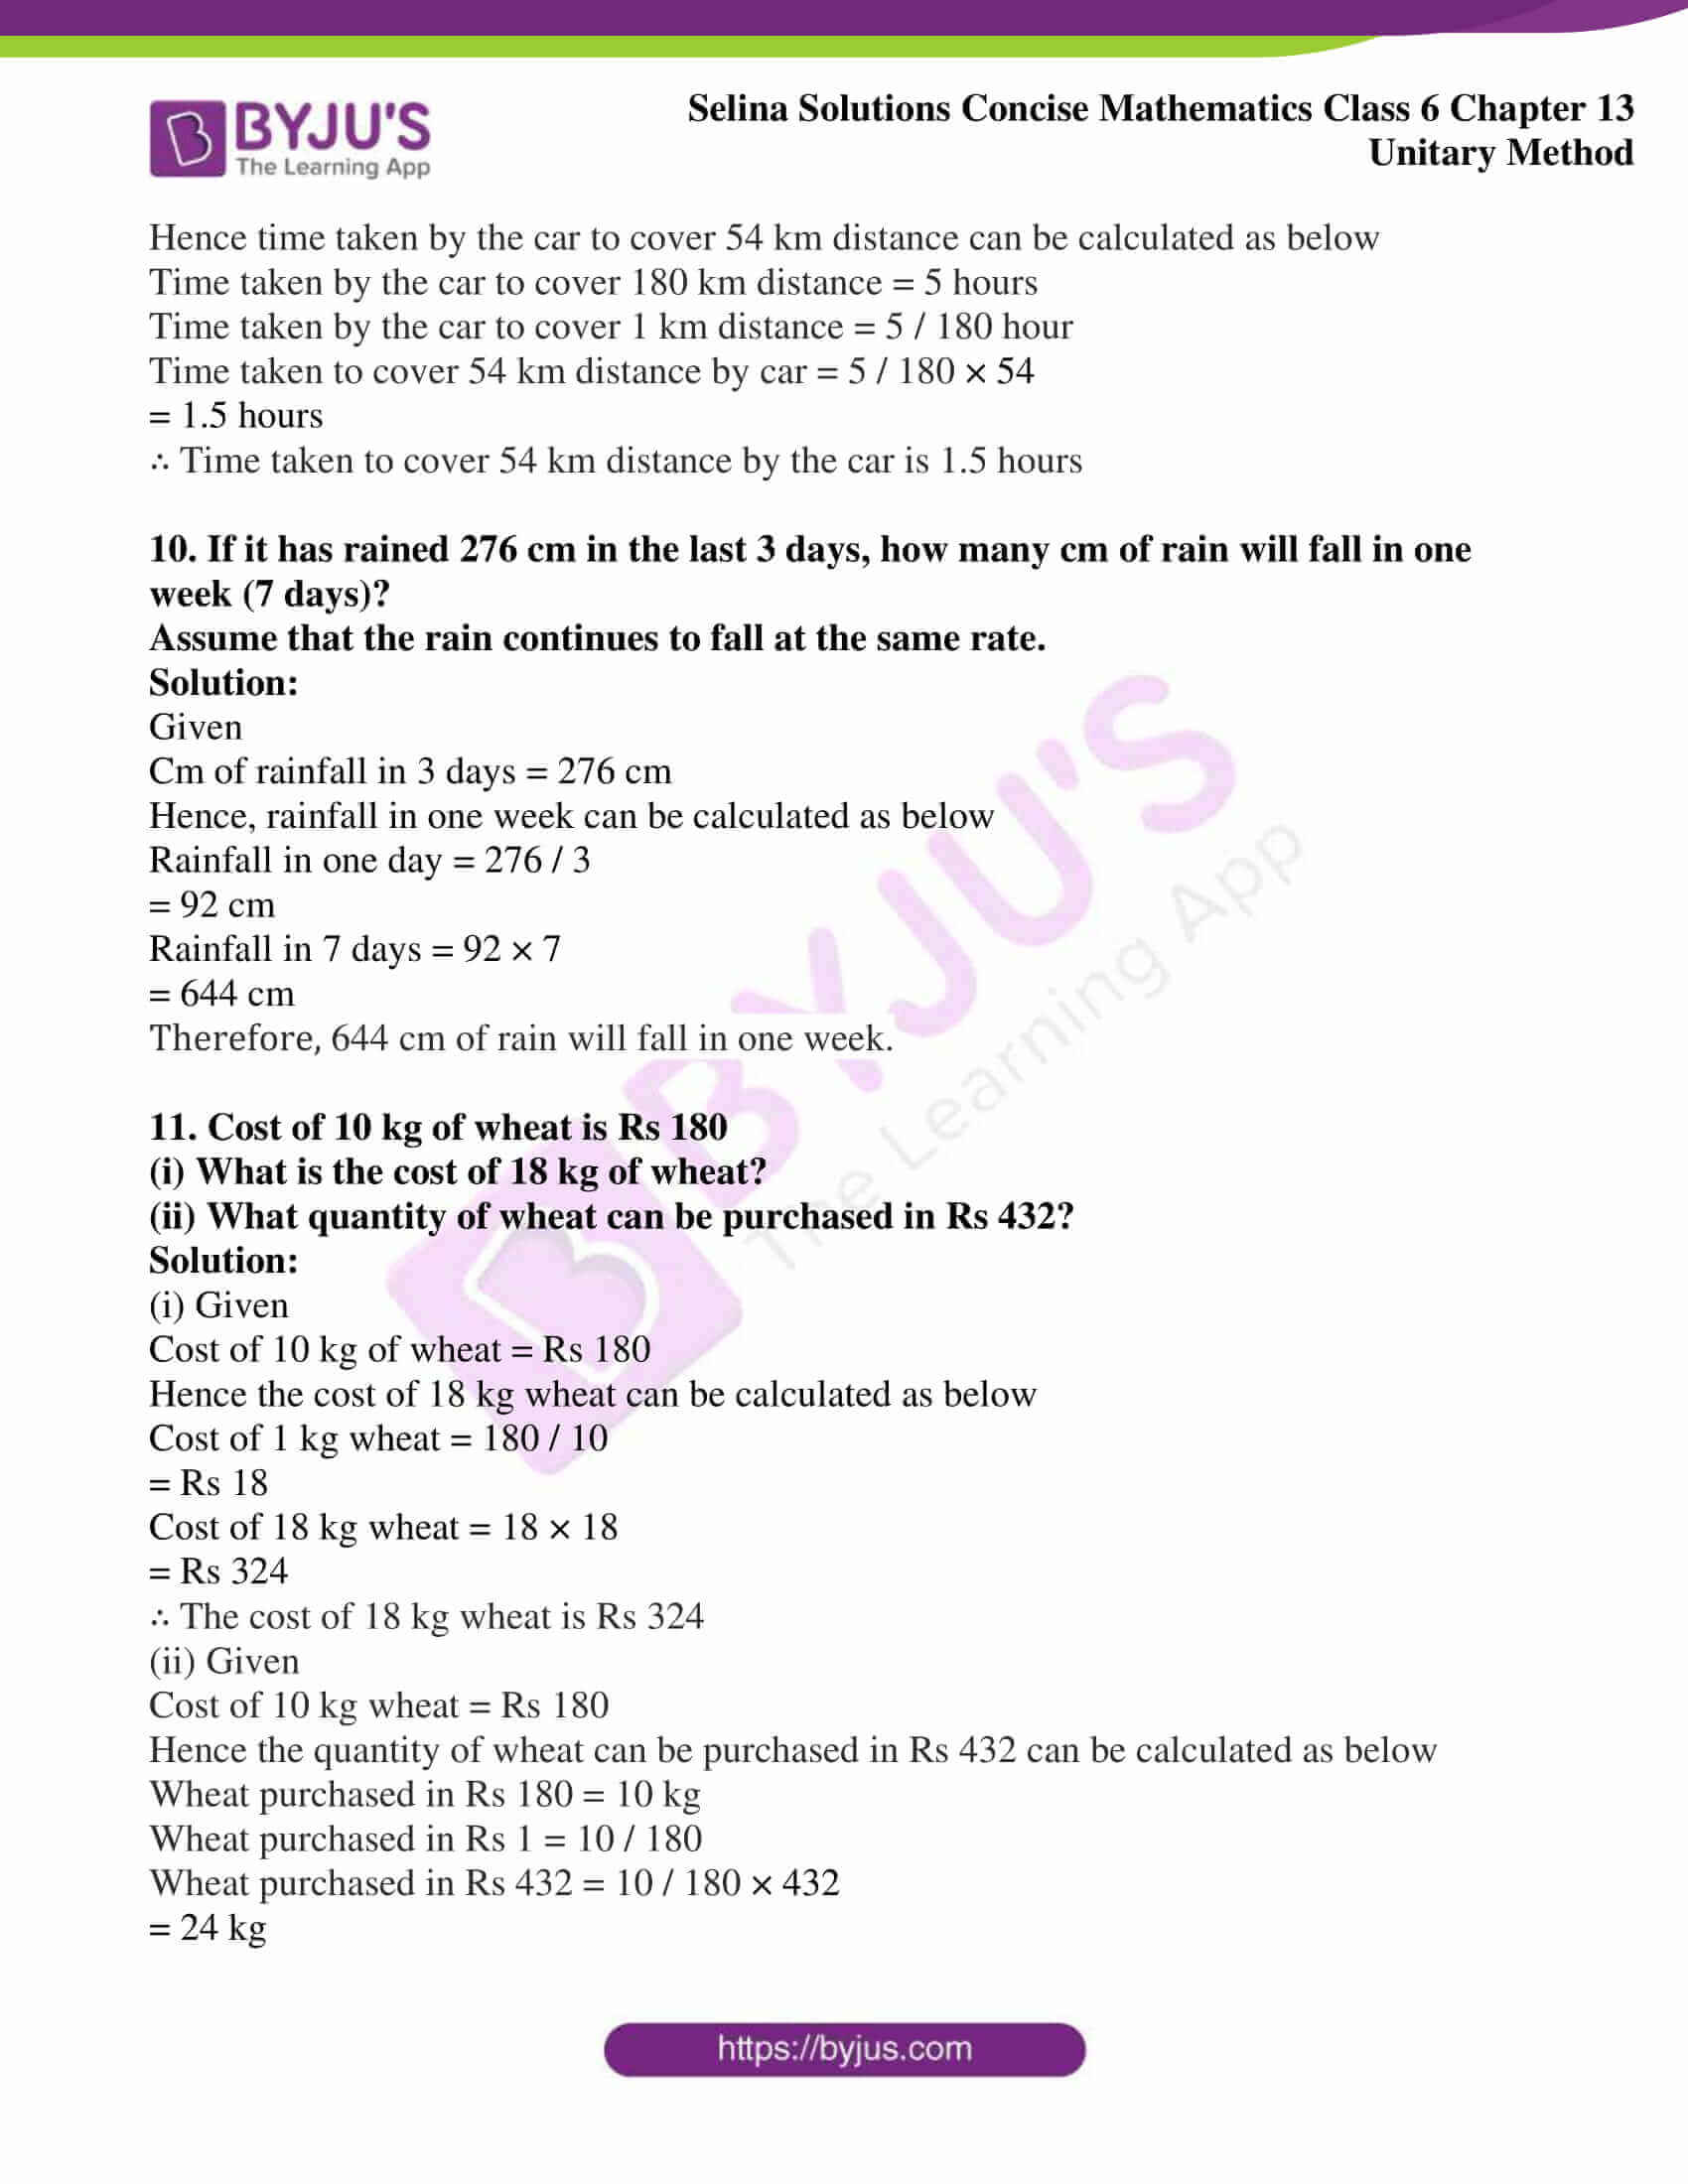 selina solution concise maths class 6 chapter 13 ex a 5